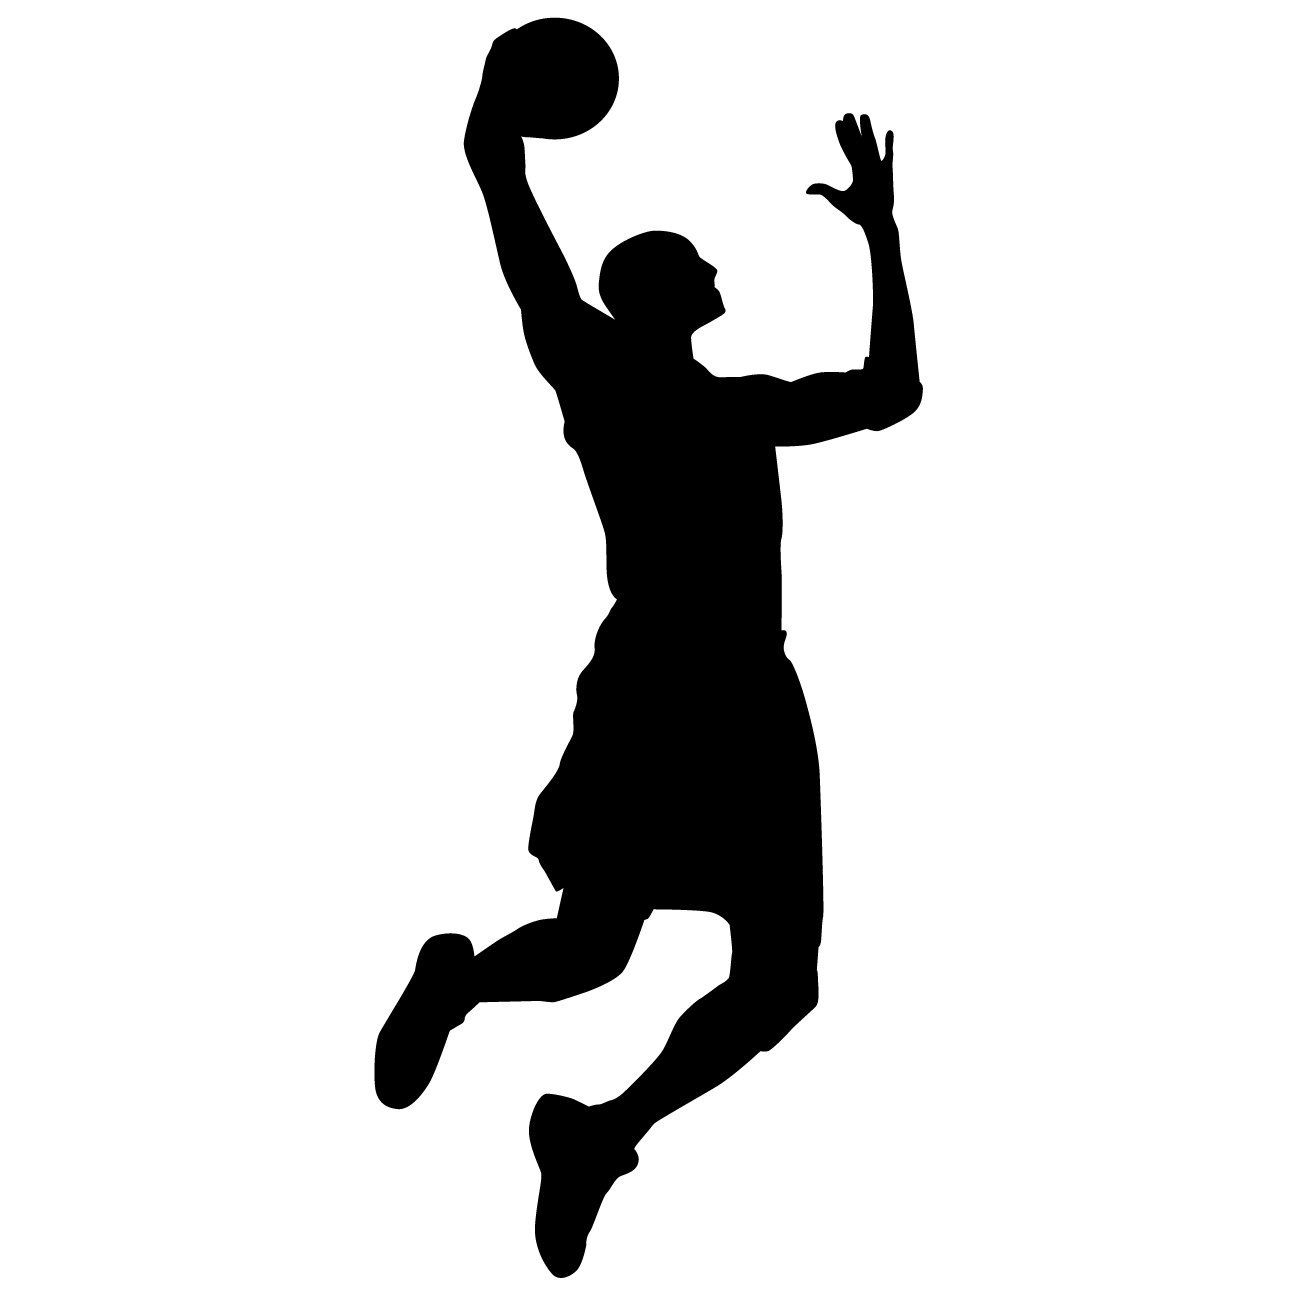 Basketball Wall Decal Sticker 15 Decal Stickers And Mural For Kids Boys Girls Room And Bedroom Spo Basketball Wall Decals Murals For Kids Wall Decal Sticker